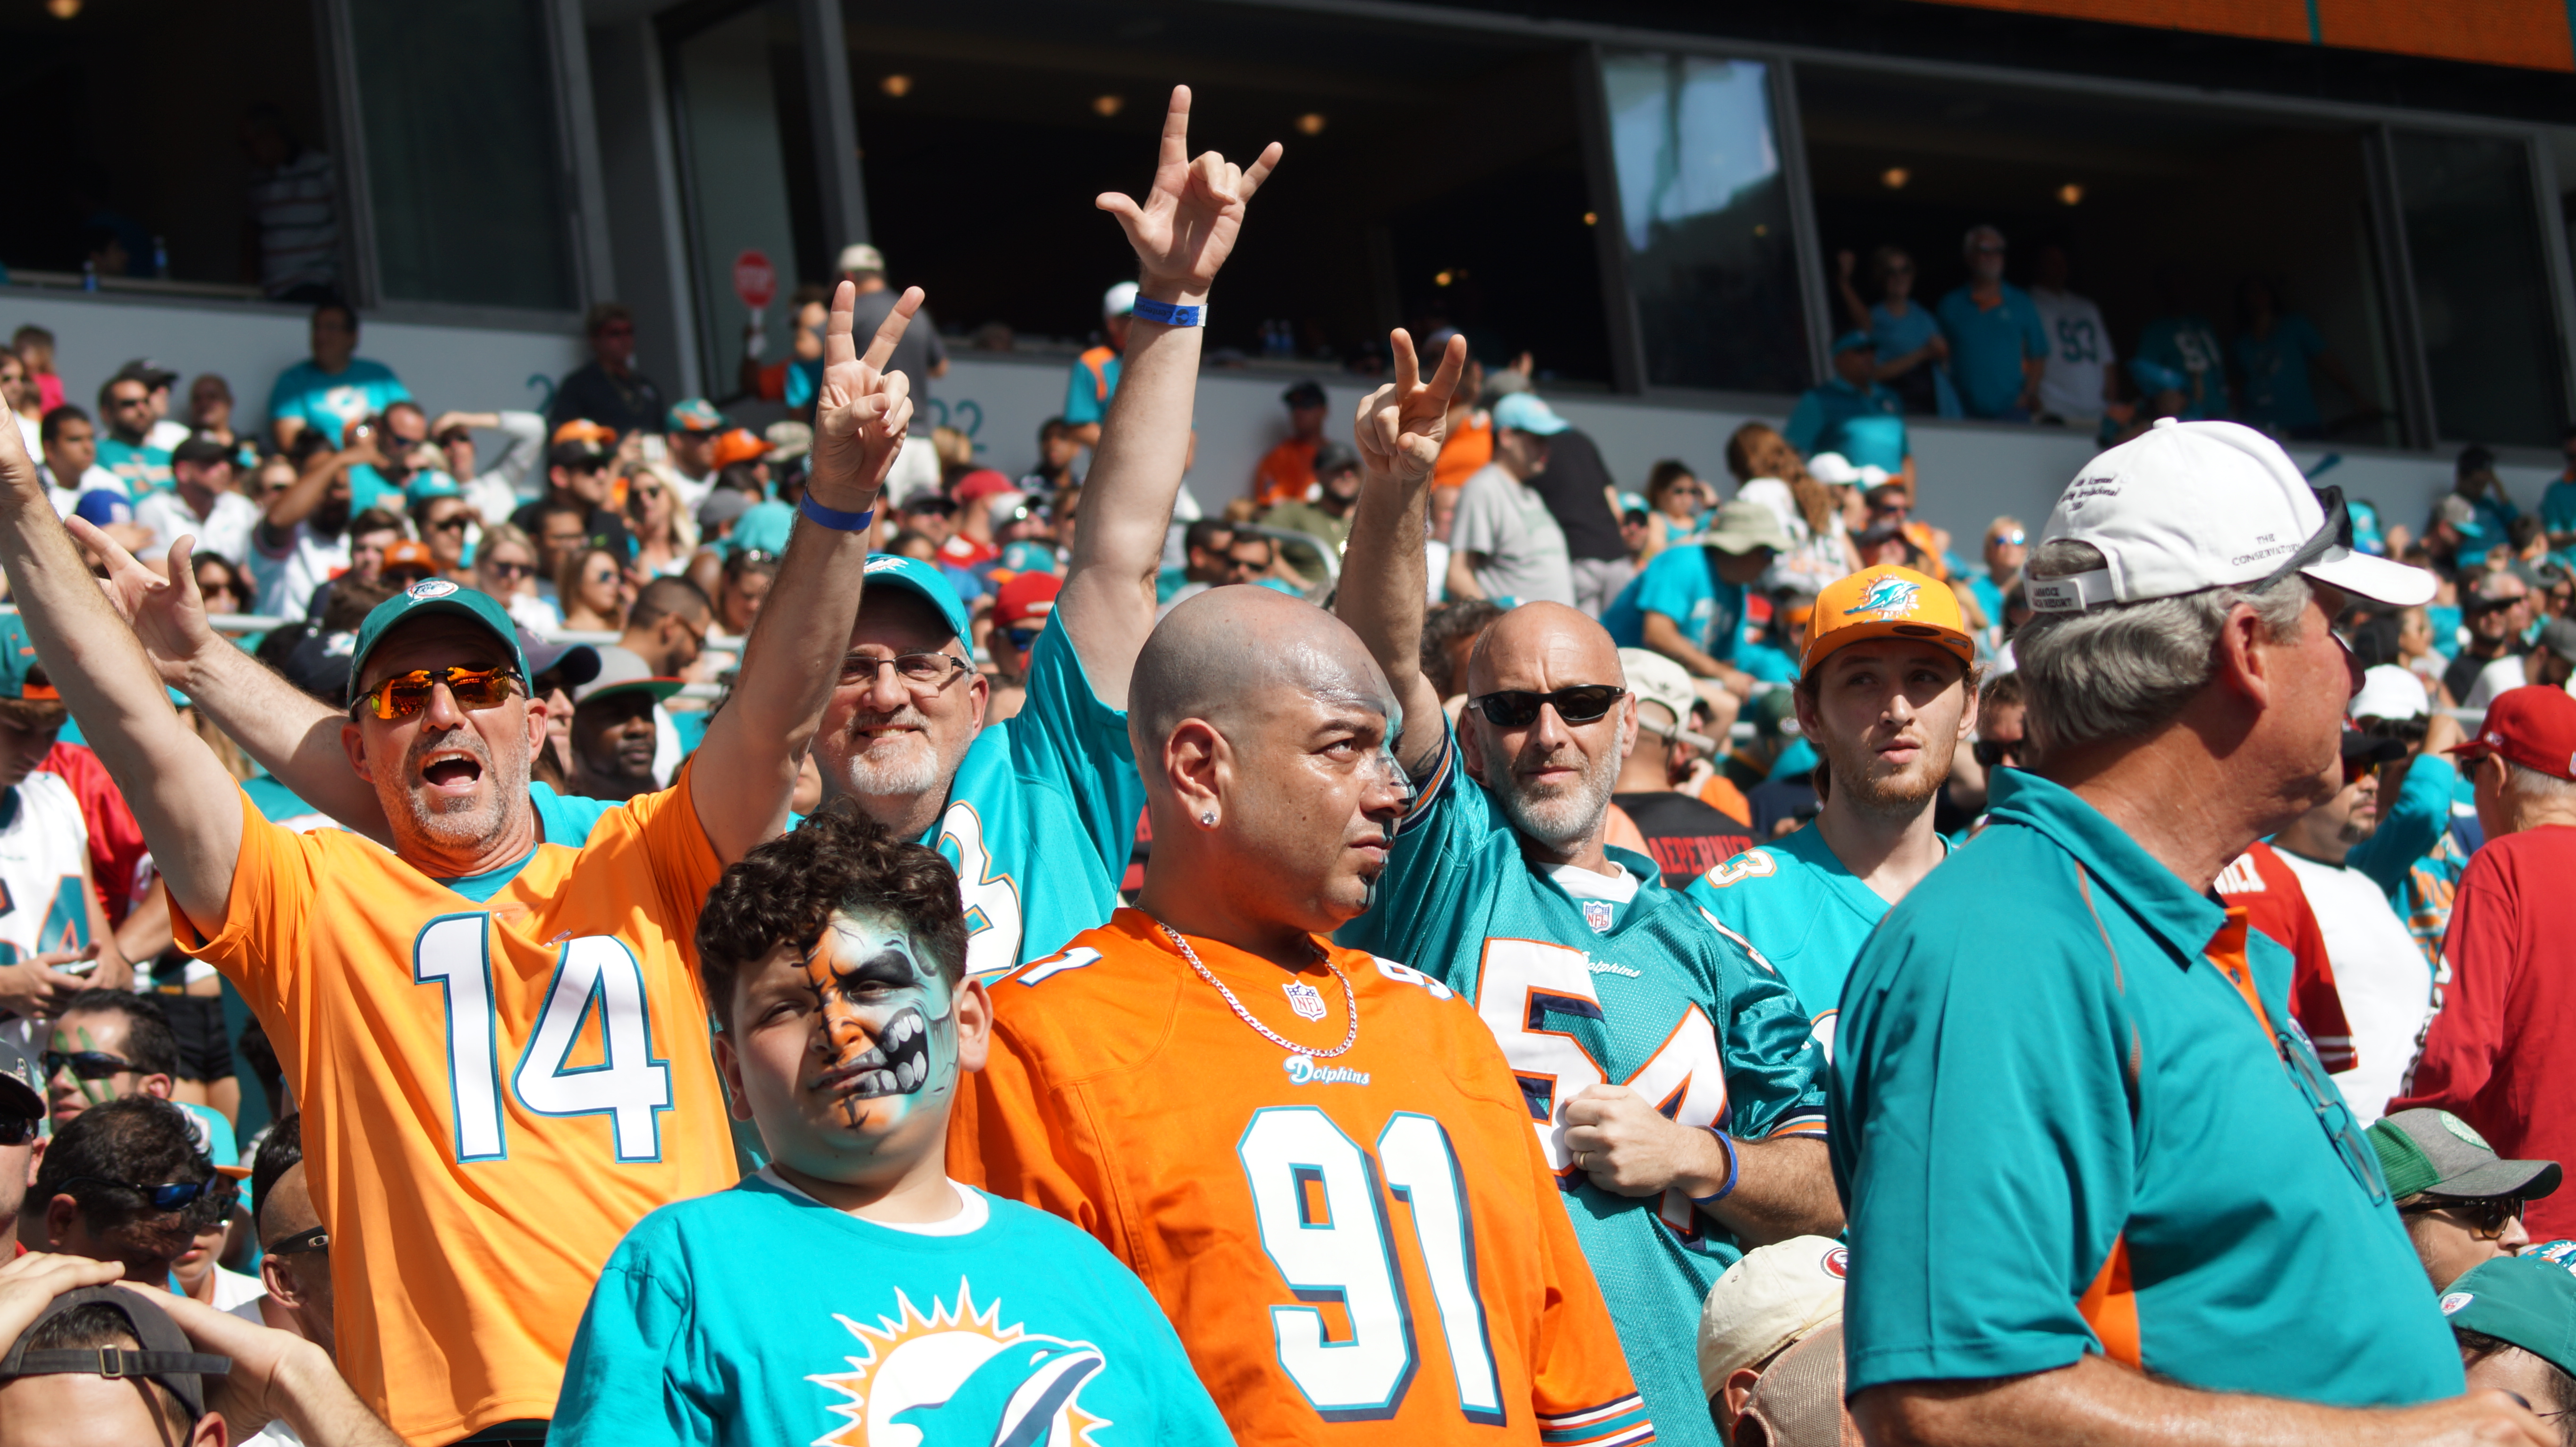 Miami Dolphins still not getting national attention